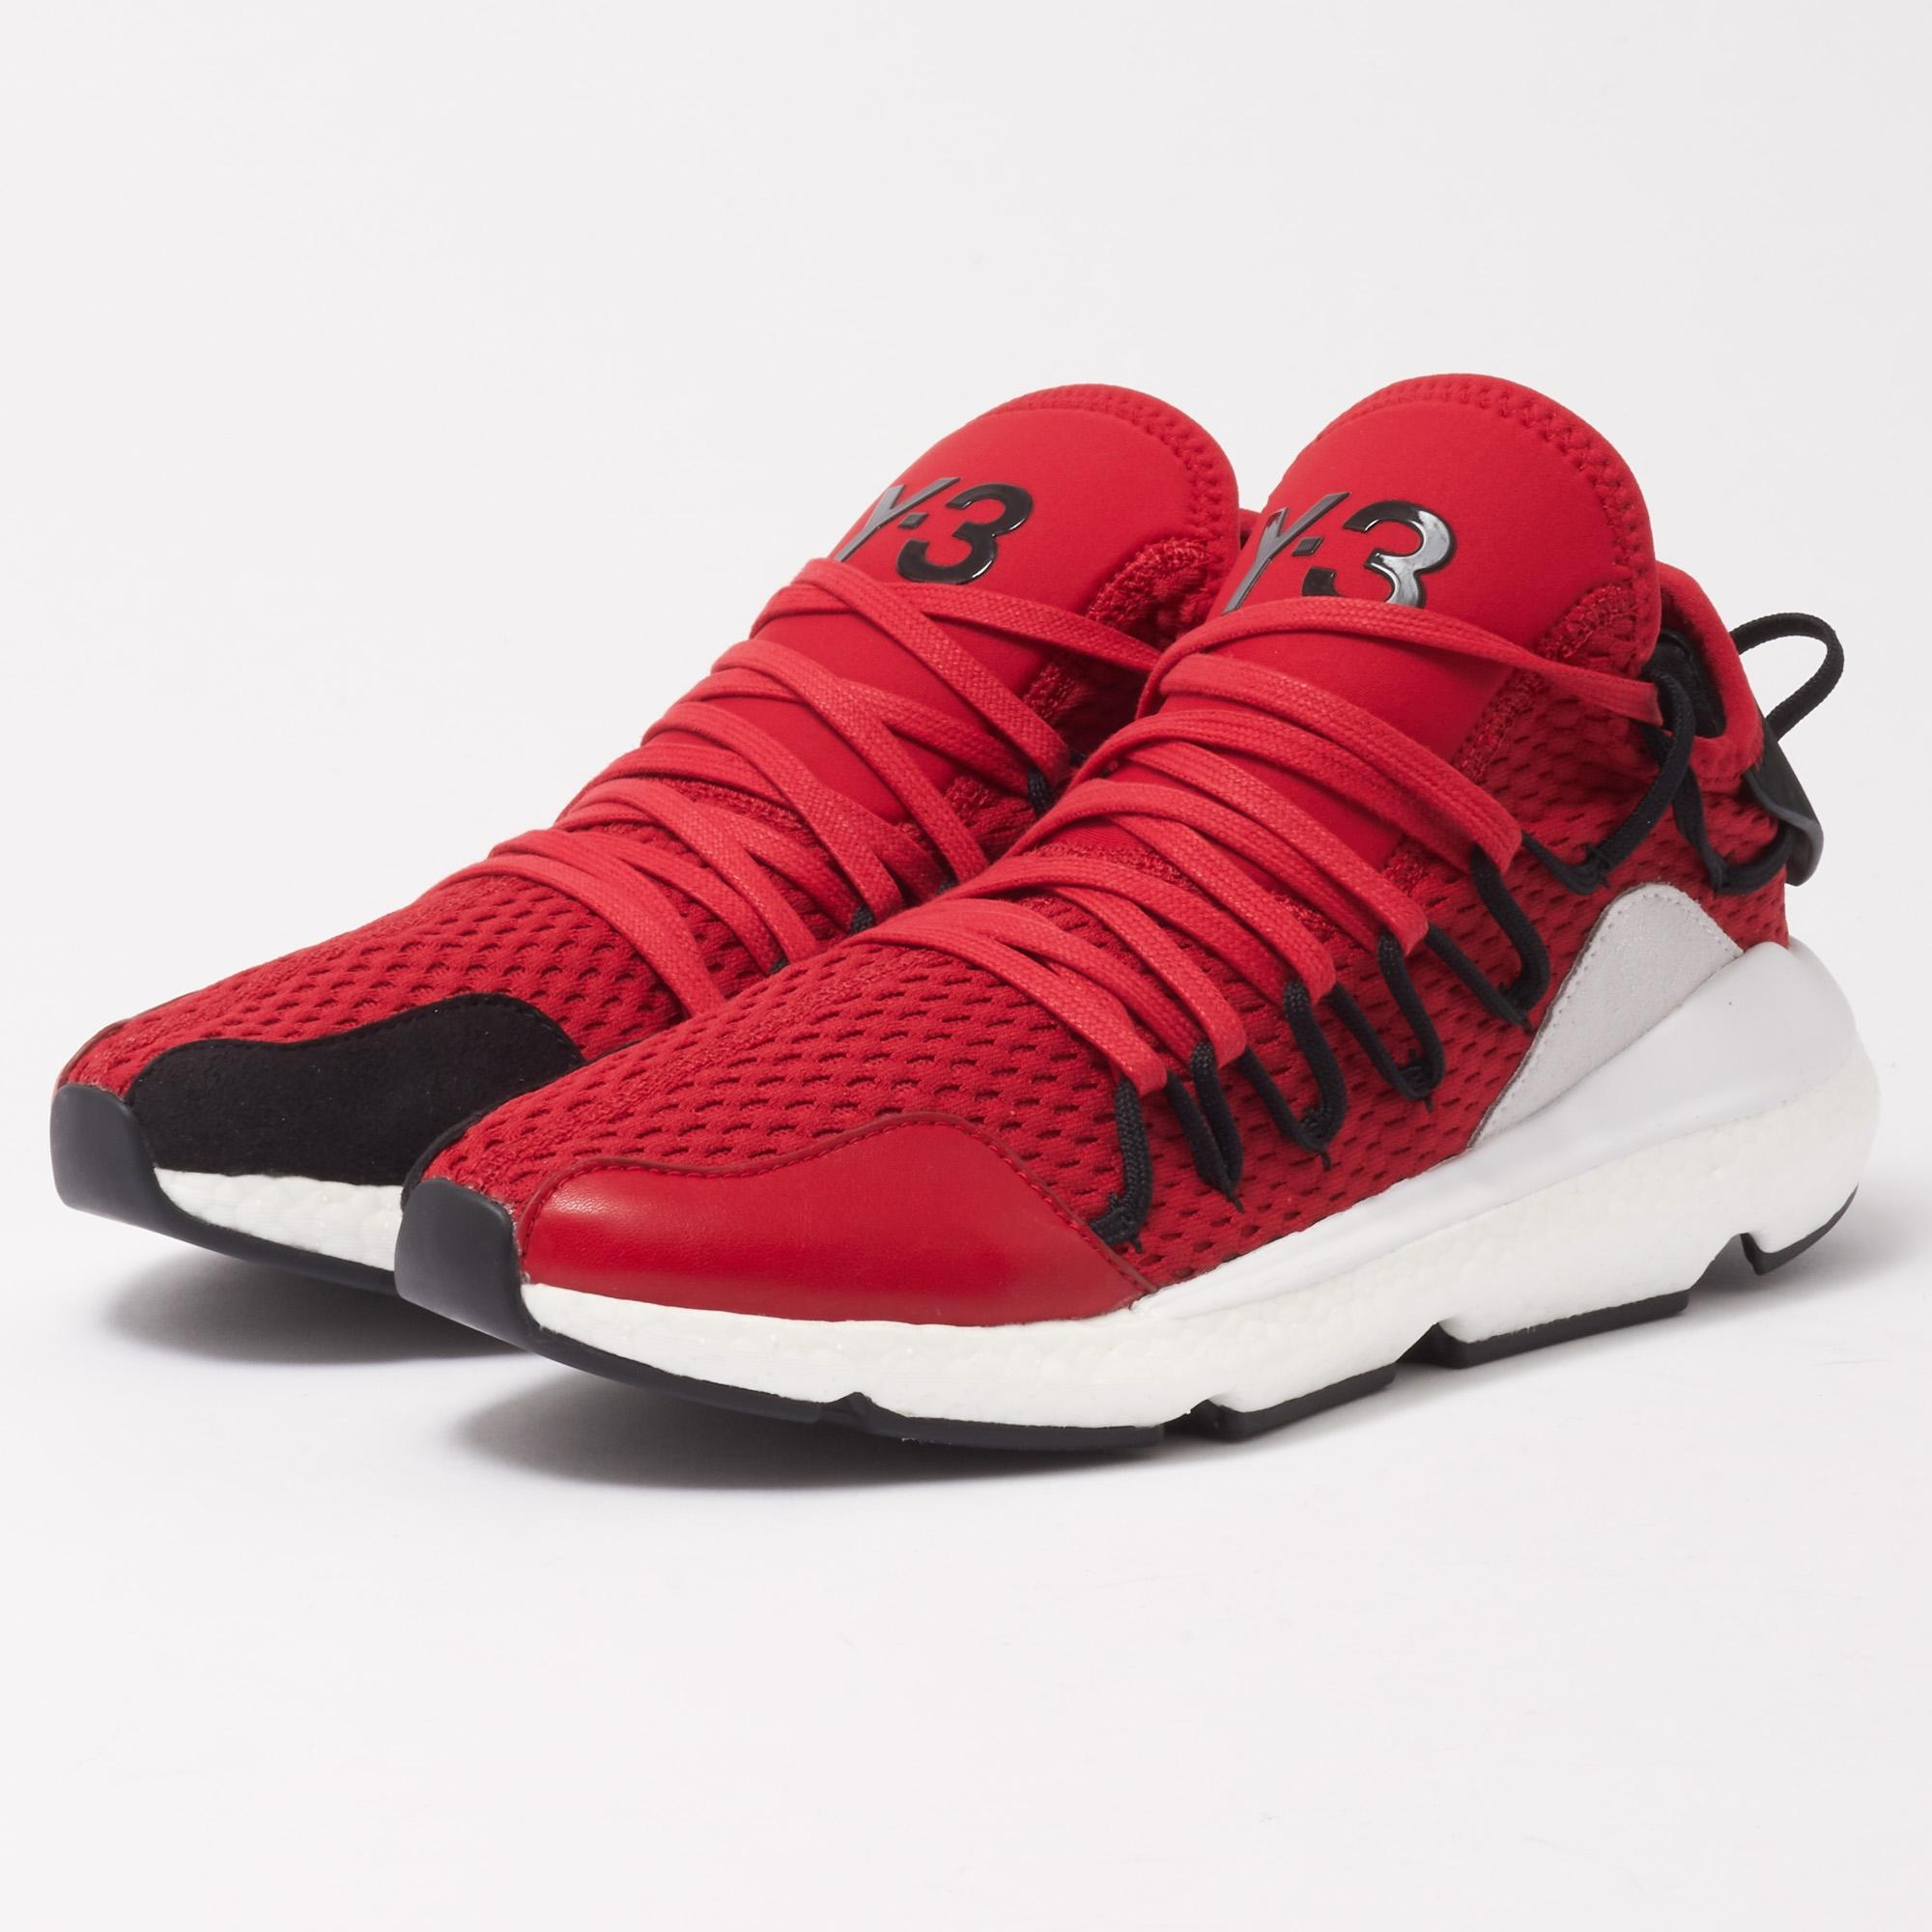 de8ca5a61 Y-3 Y-3 Kusari - Chilli Pepper Red in Red for Men - Lyst